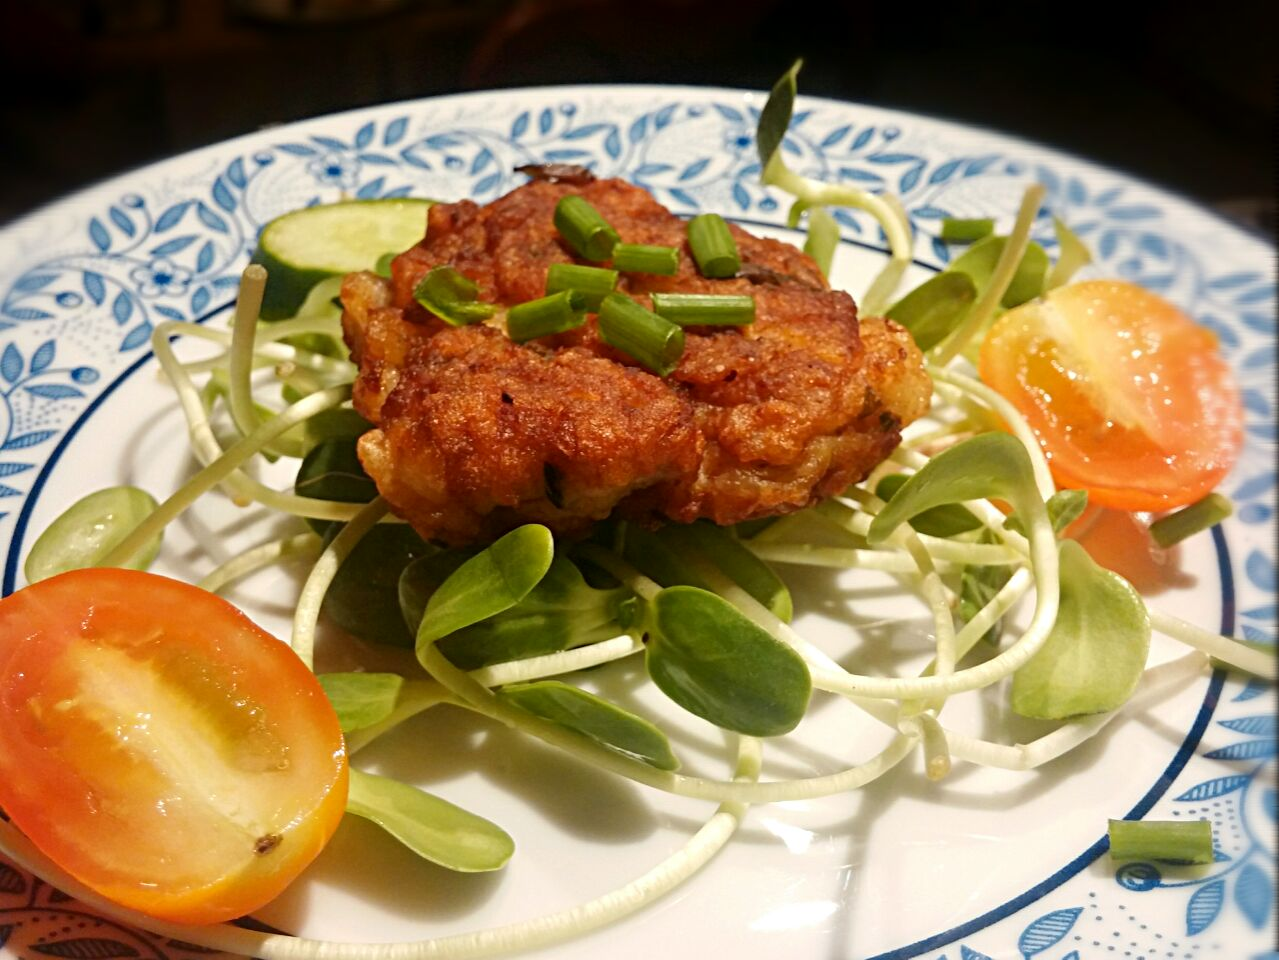 Dory Fish Cake served on a bed of Crunch Sunflower Sprouts   #simpleeats #realfood #yummy #freshflavours